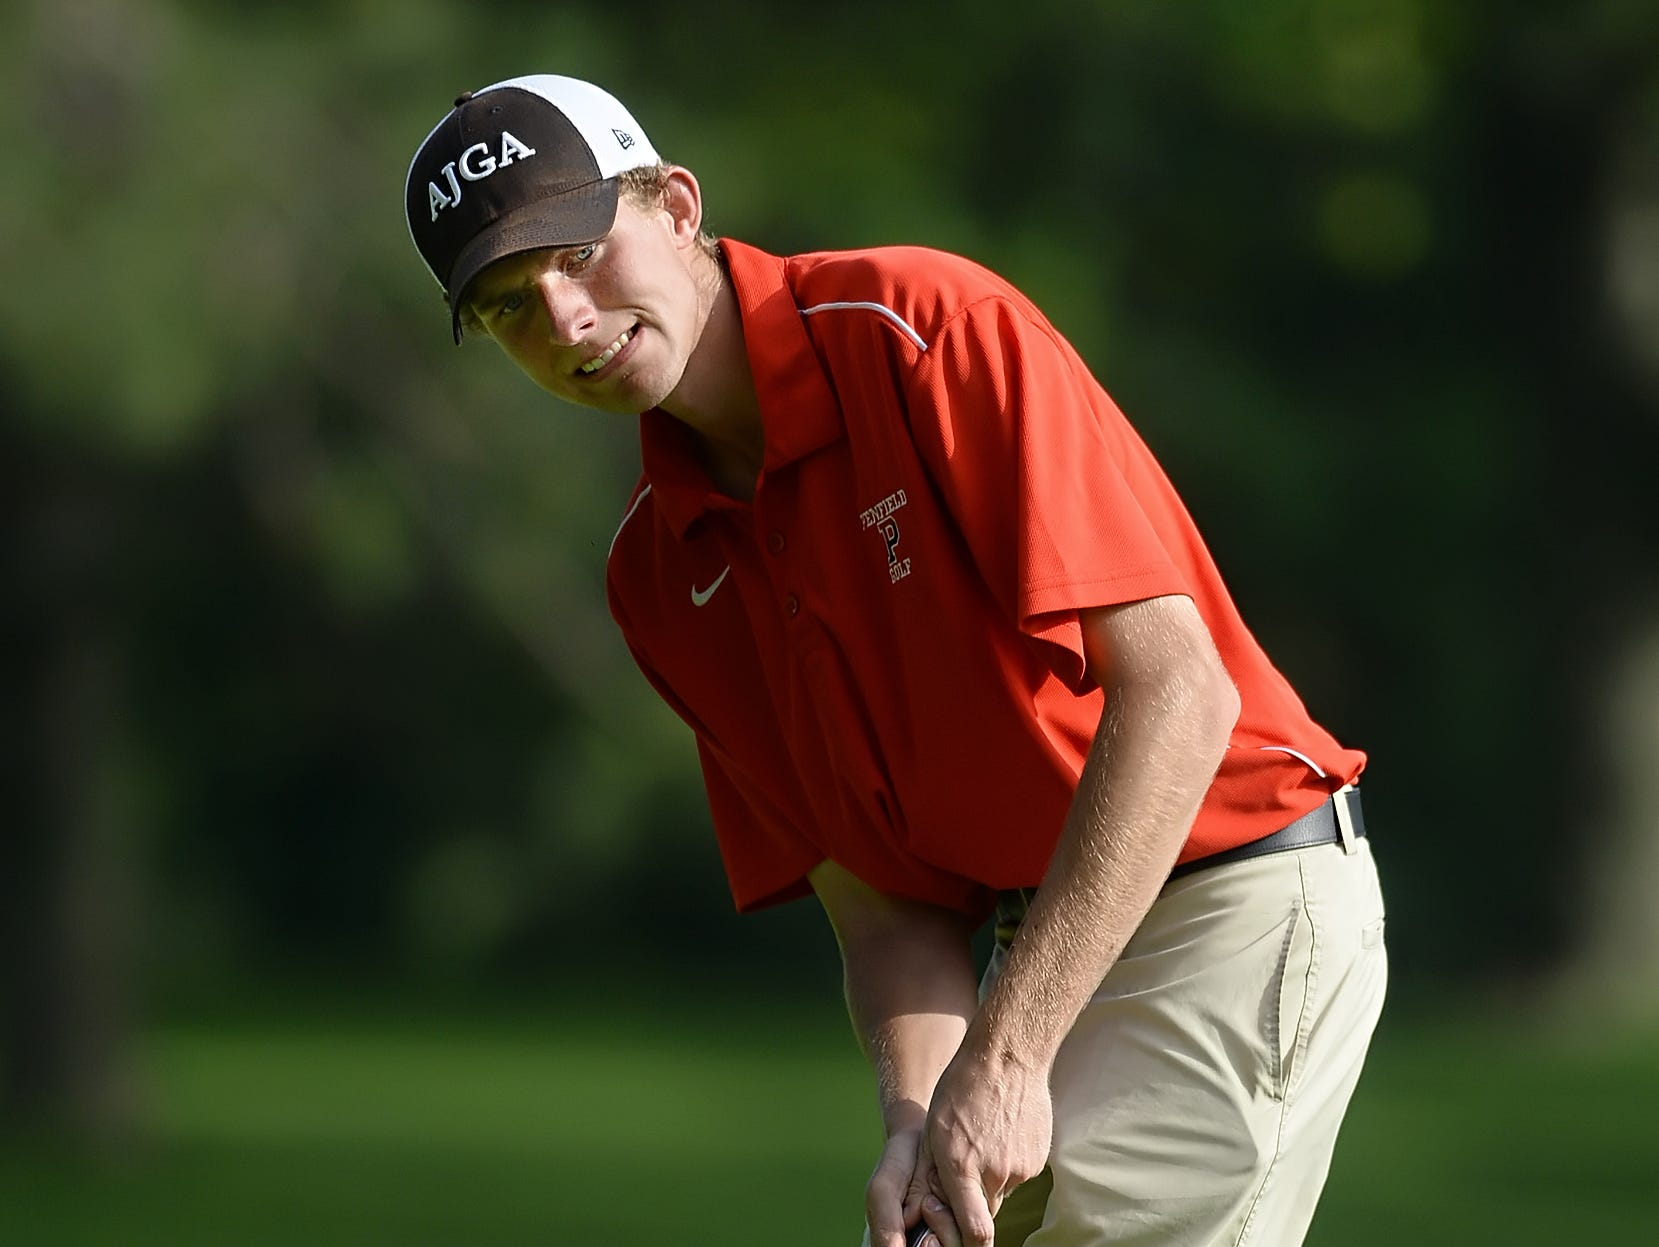 Penfield's Zak Ottman rolls a putt on the 12th green during the 2015 Section V SuperSectionals.